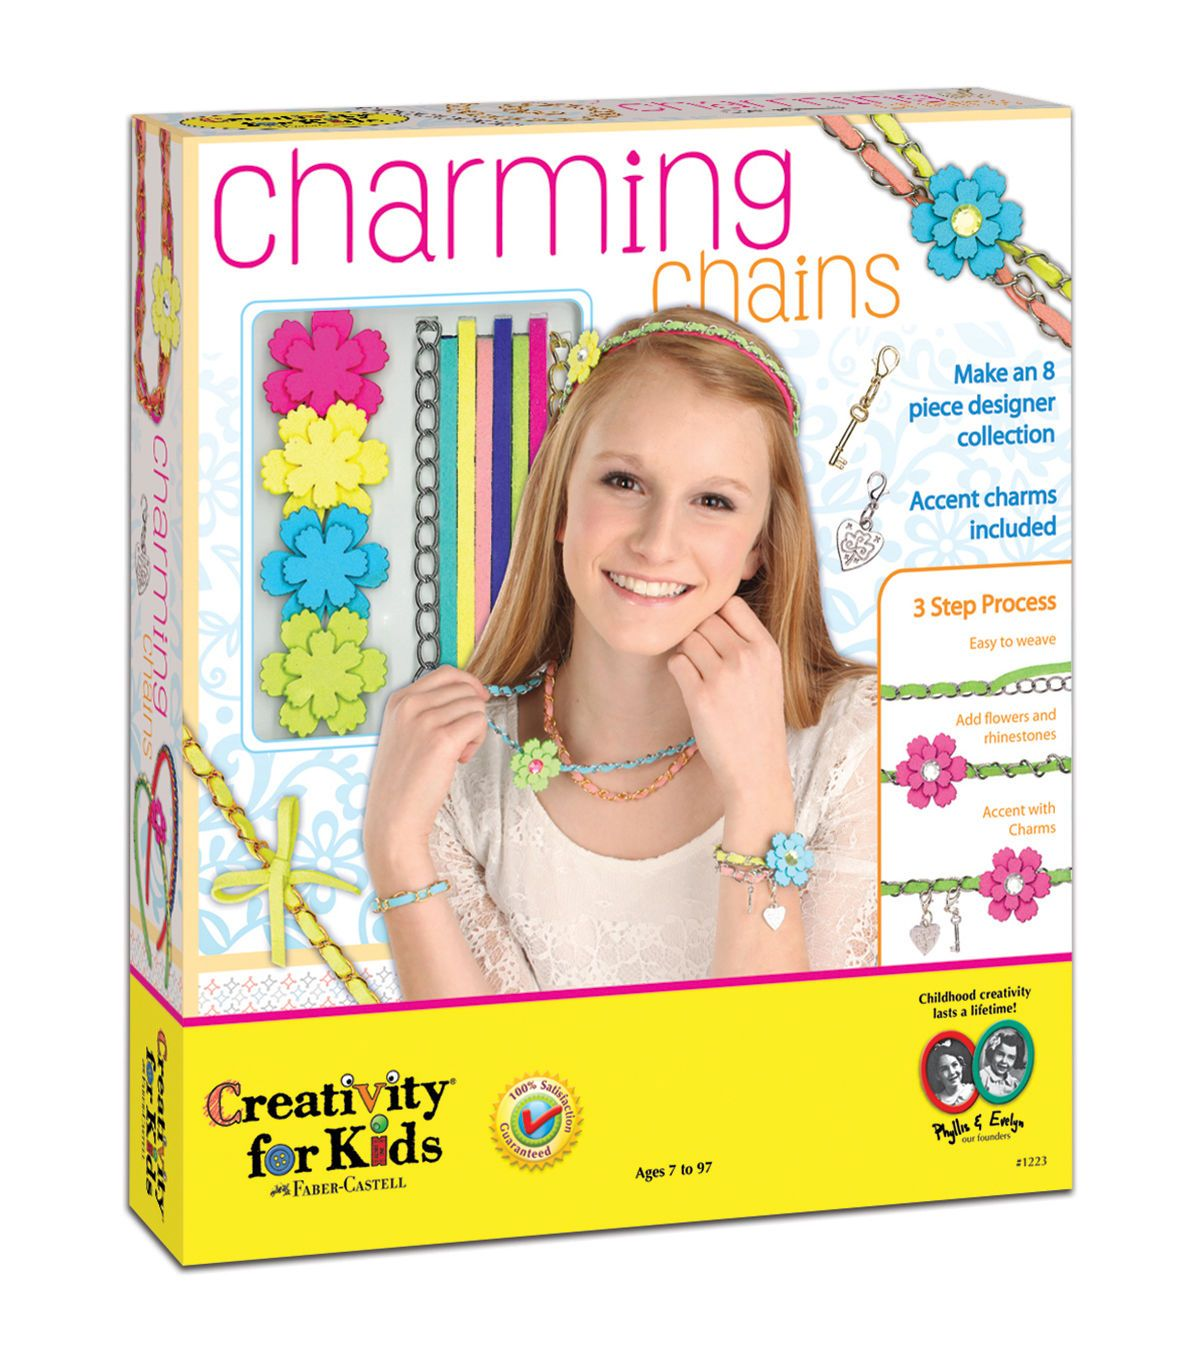 Creativity For Kids Charming Chains Accessory Kit Creative